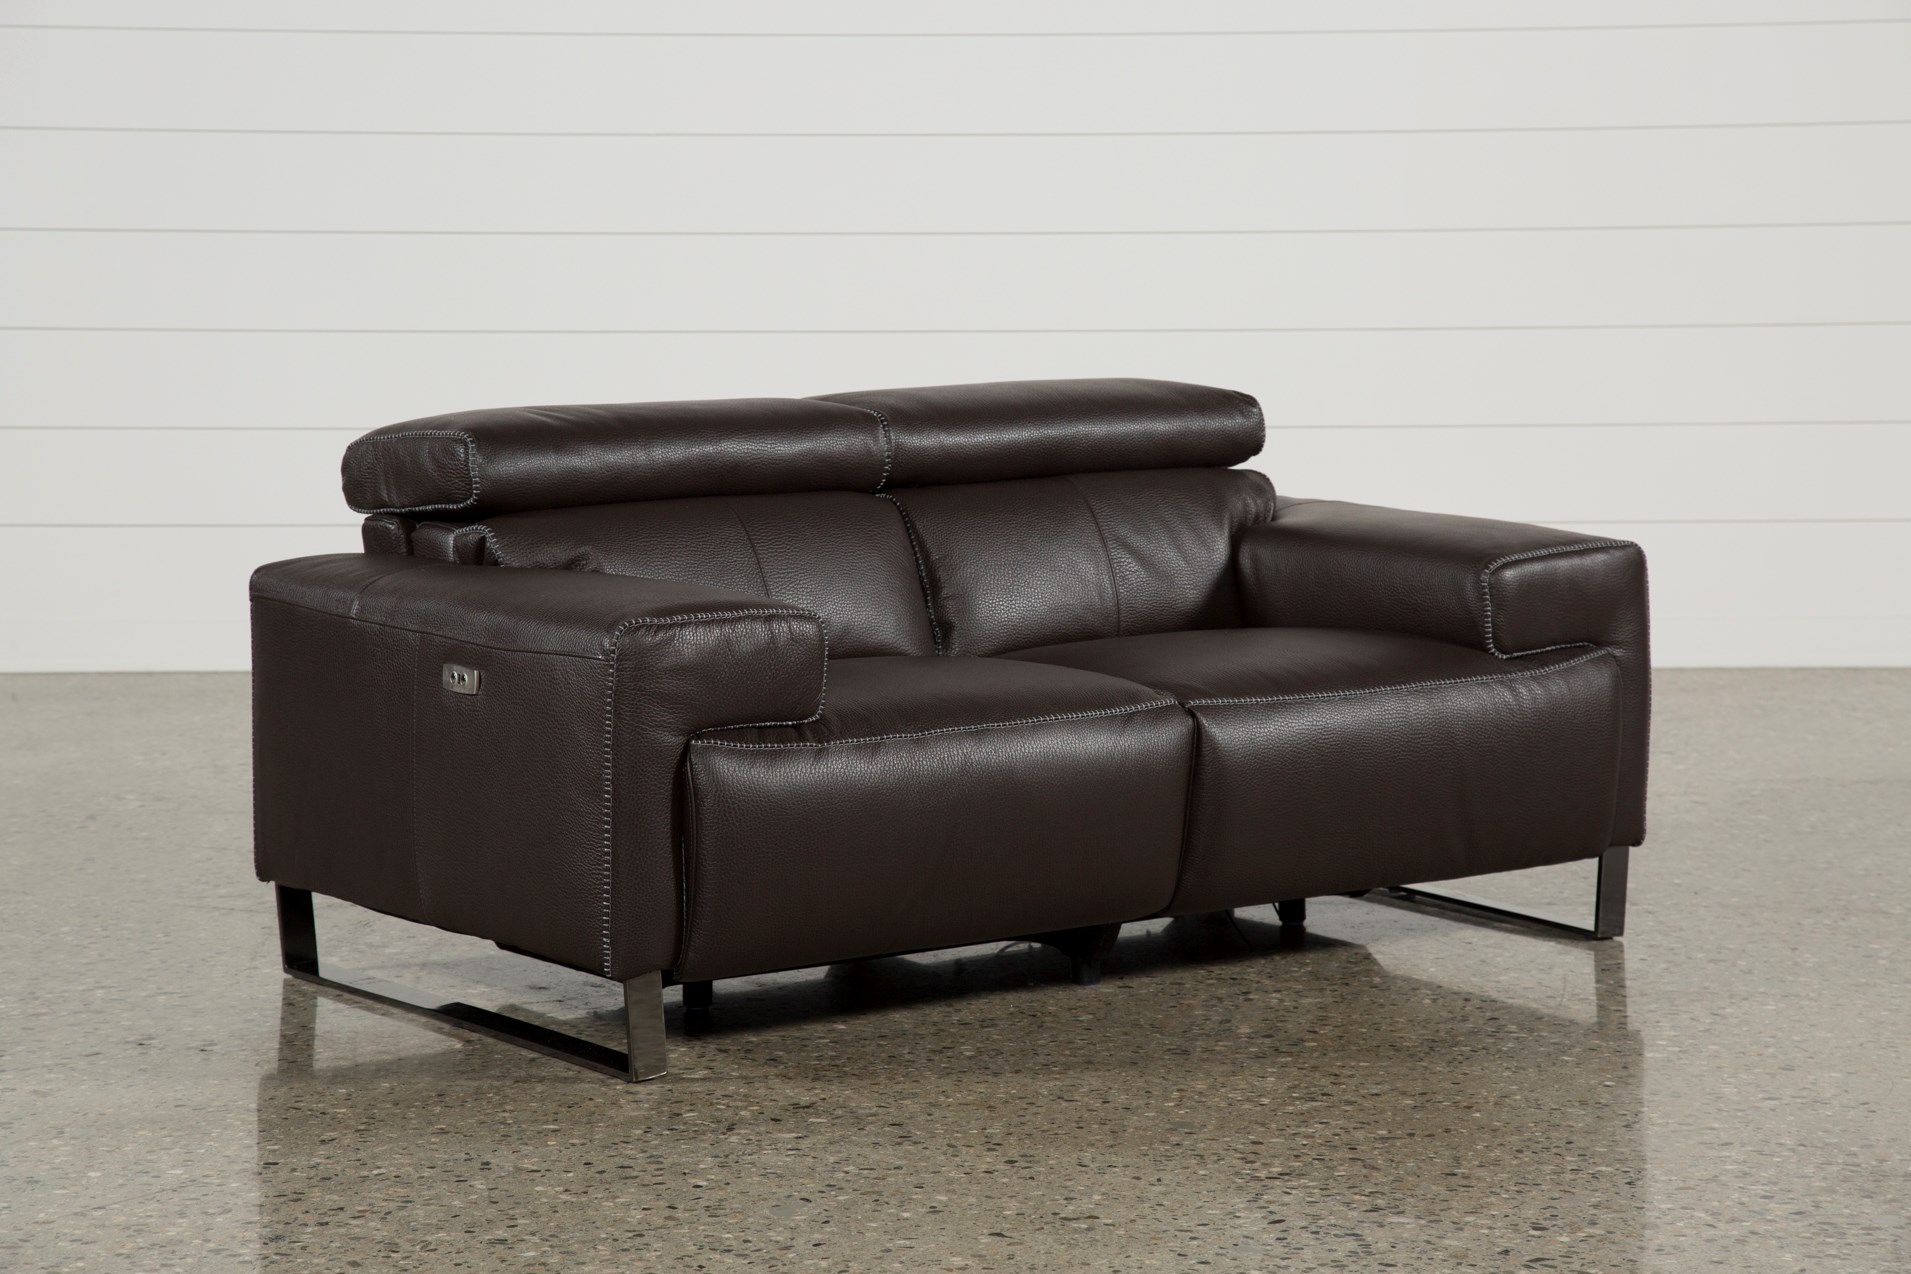 store oak loveseats match rcwilley power leather pacific furniture reclining loveseat room willey rc view jsp living